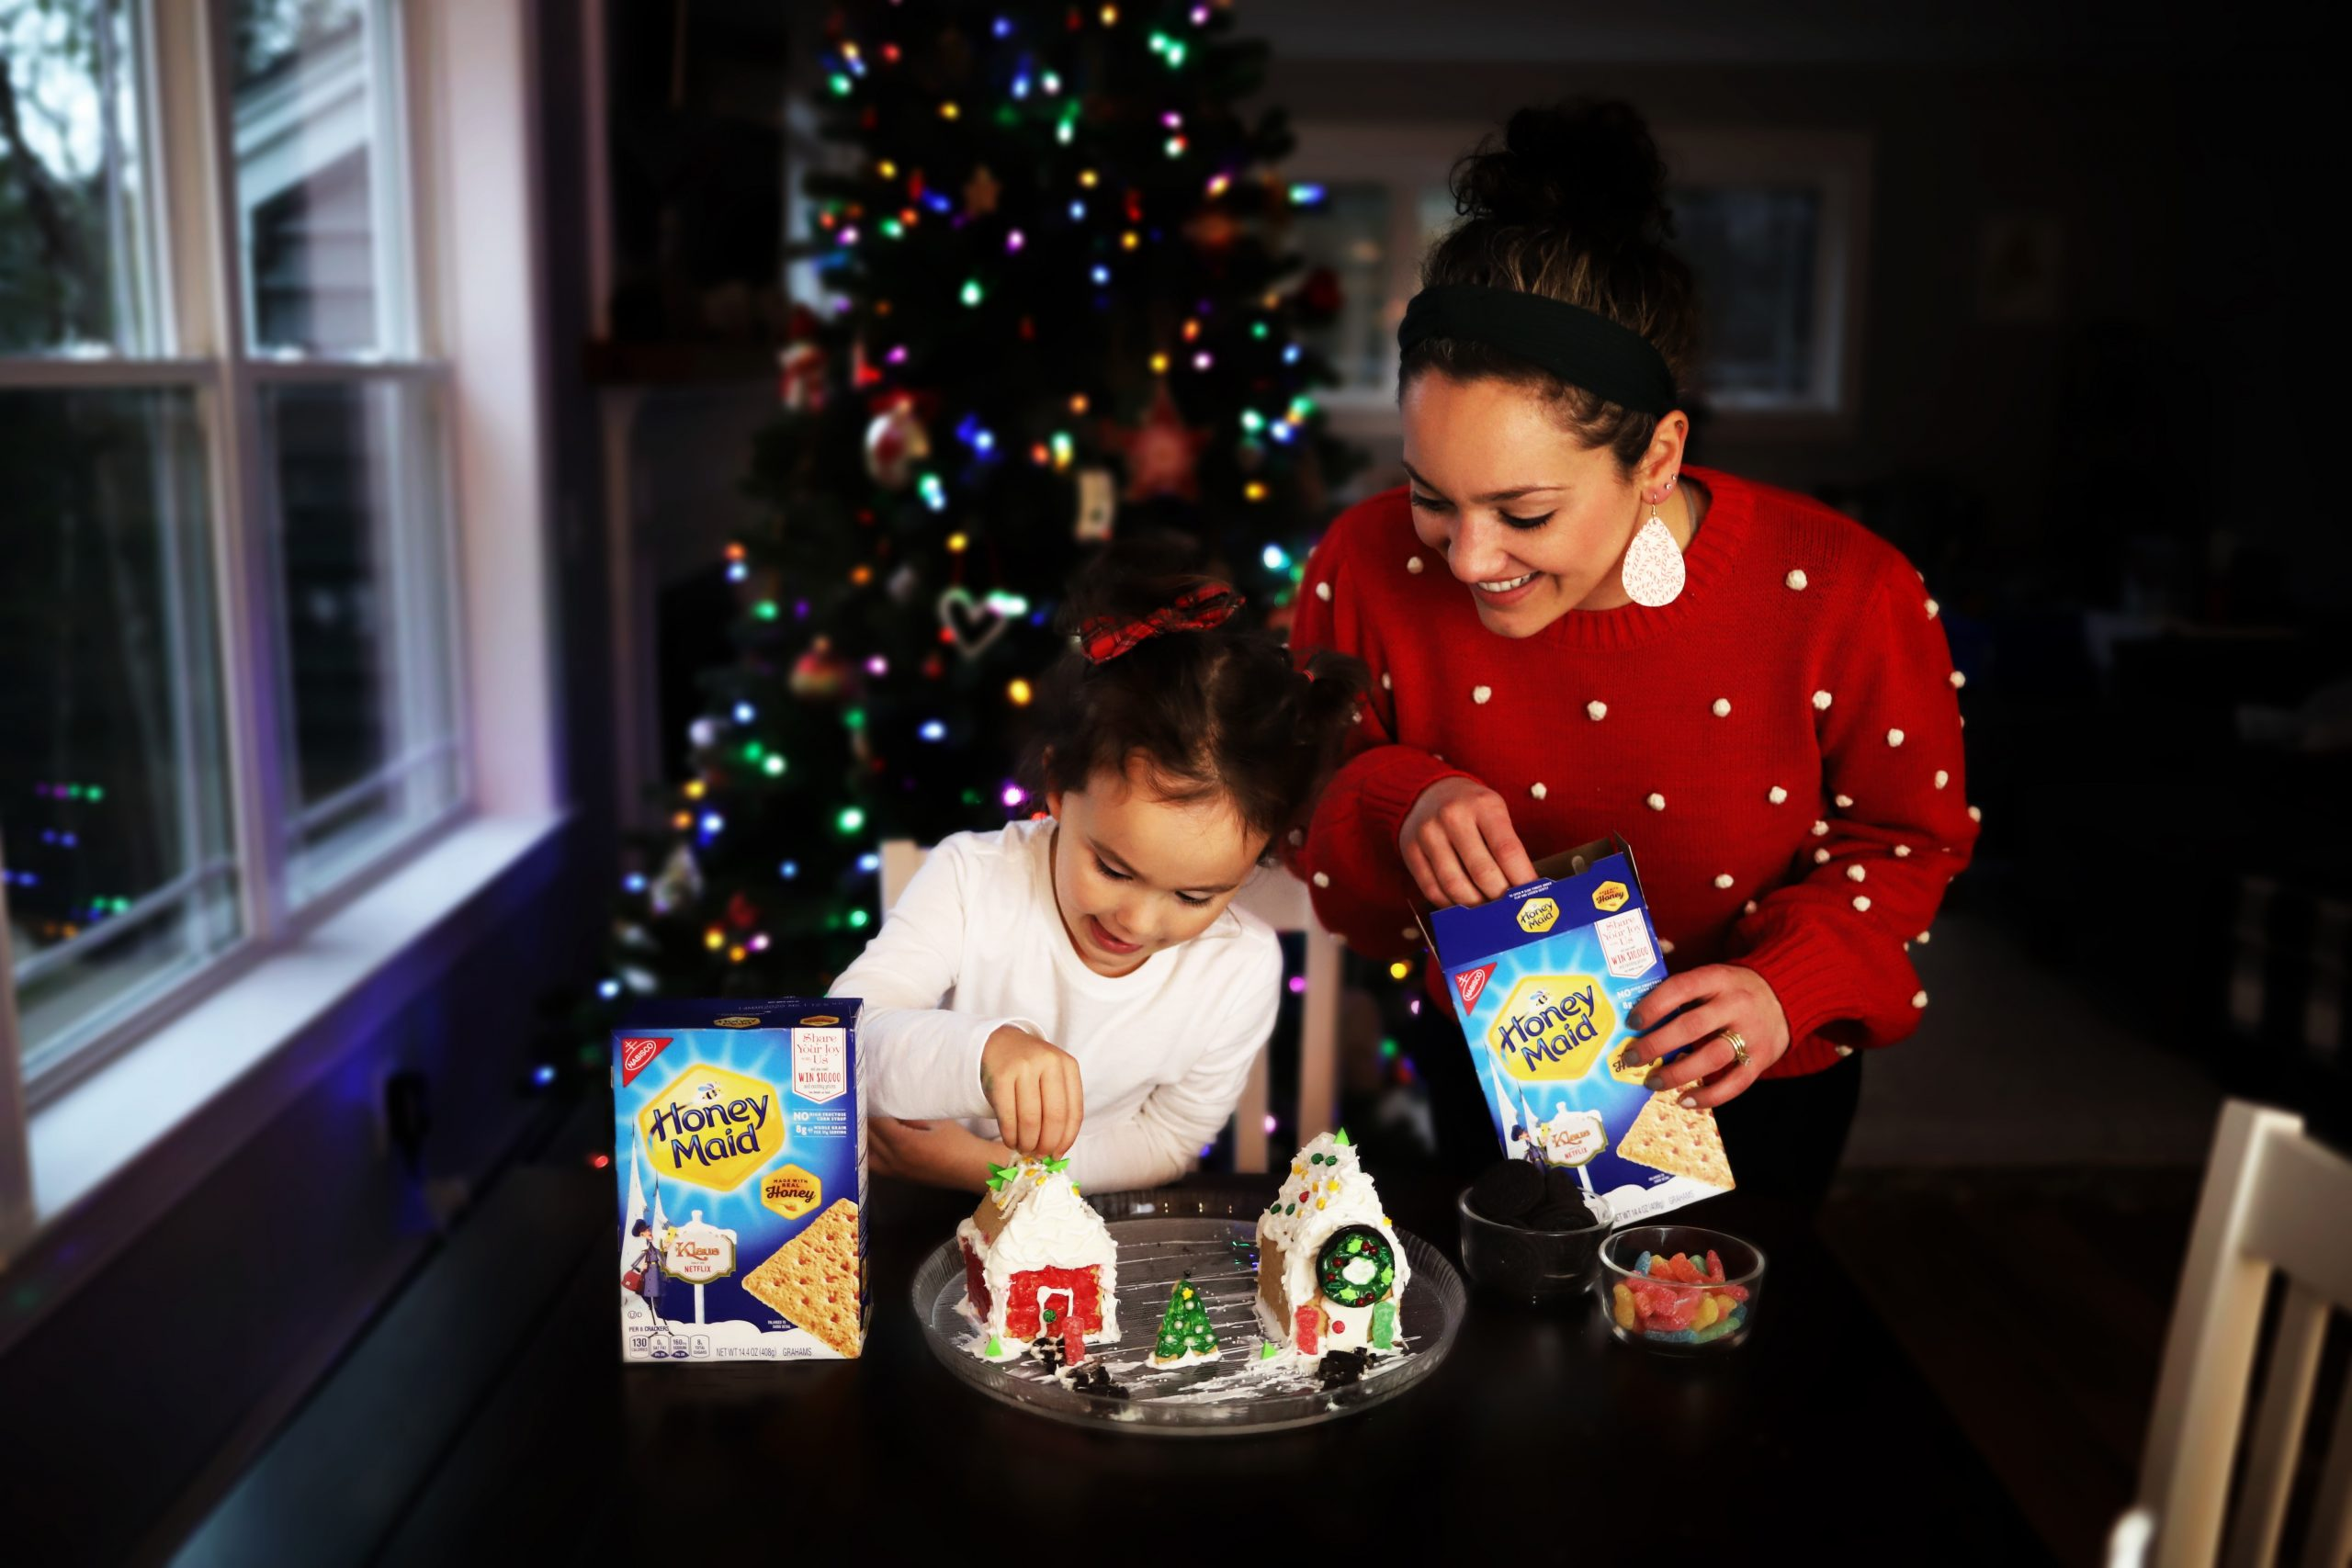 Creating Holiday Houses with Honey Maid graham crackers